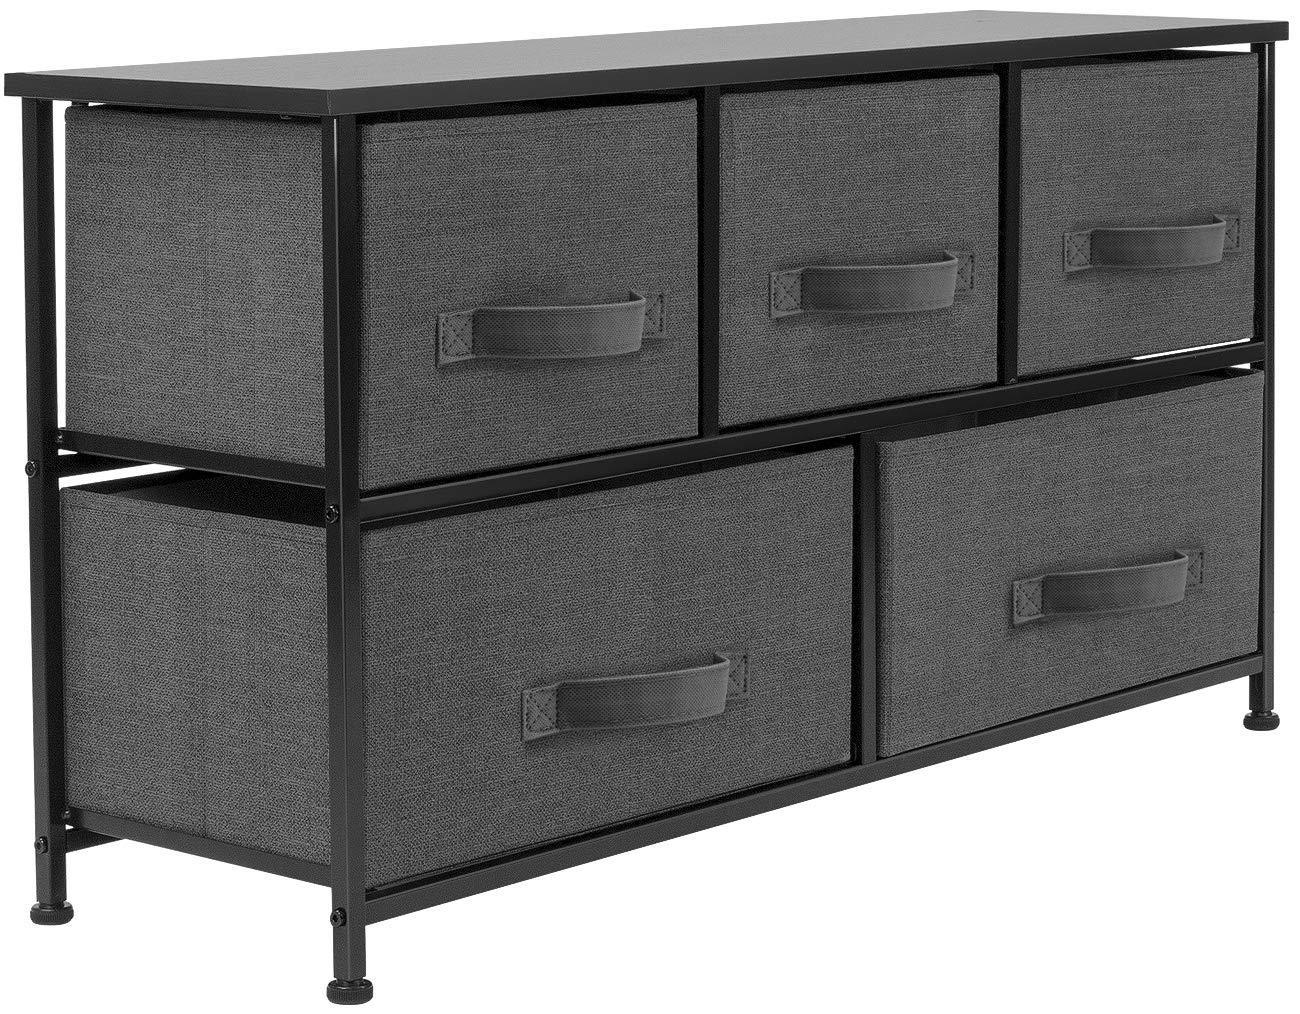 Best sorbus dresser with drawers furniture storage tower unit for bedroom hallway closet office organization steel frame wood top easy pull fabric bins 5 drawer black charcoal